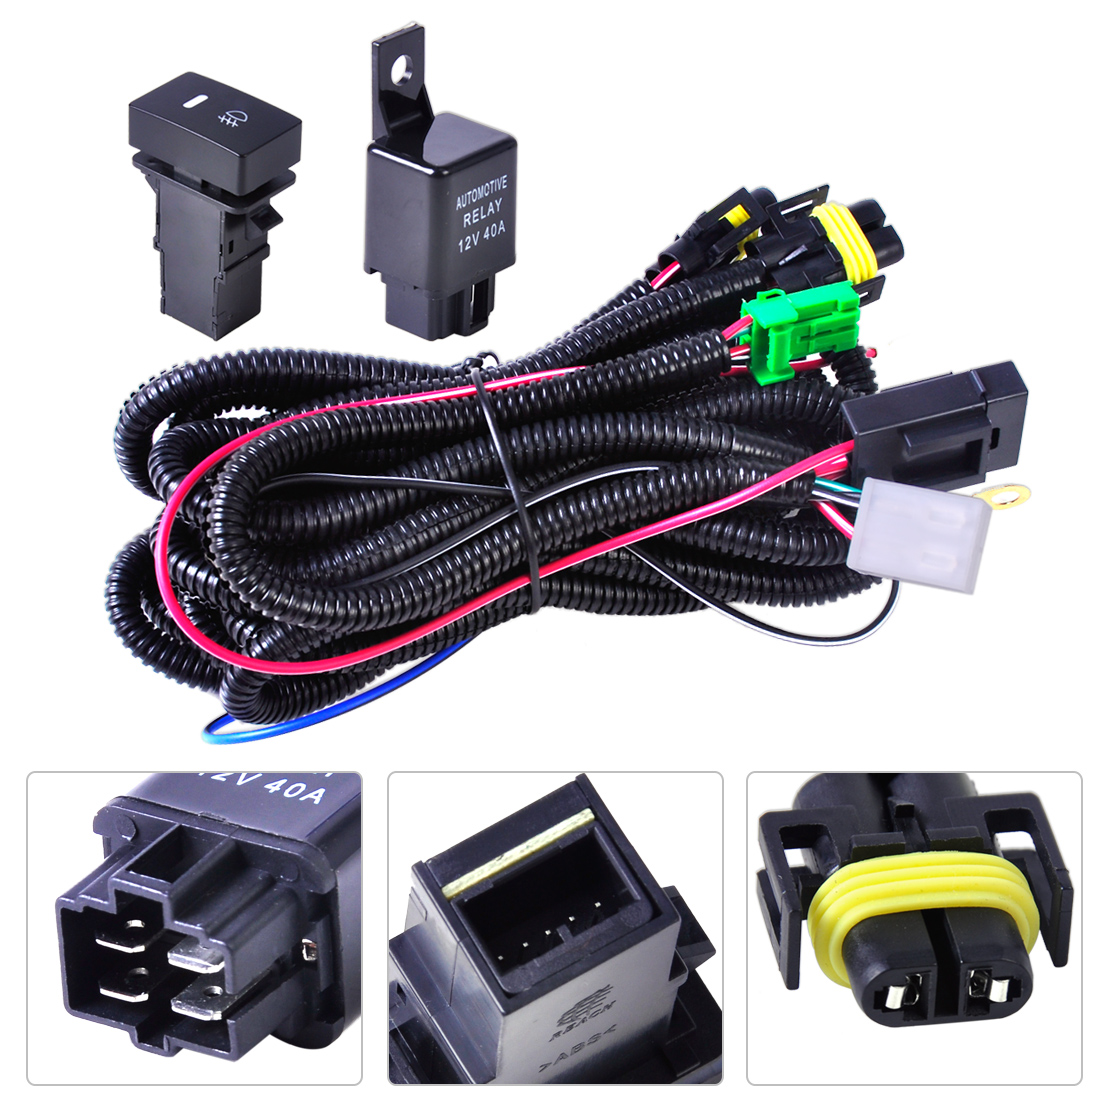 1 wiring harness sockets switch for h11 fog light lamp ford focus 2001 mustang fog light wiring harness at n-0.co